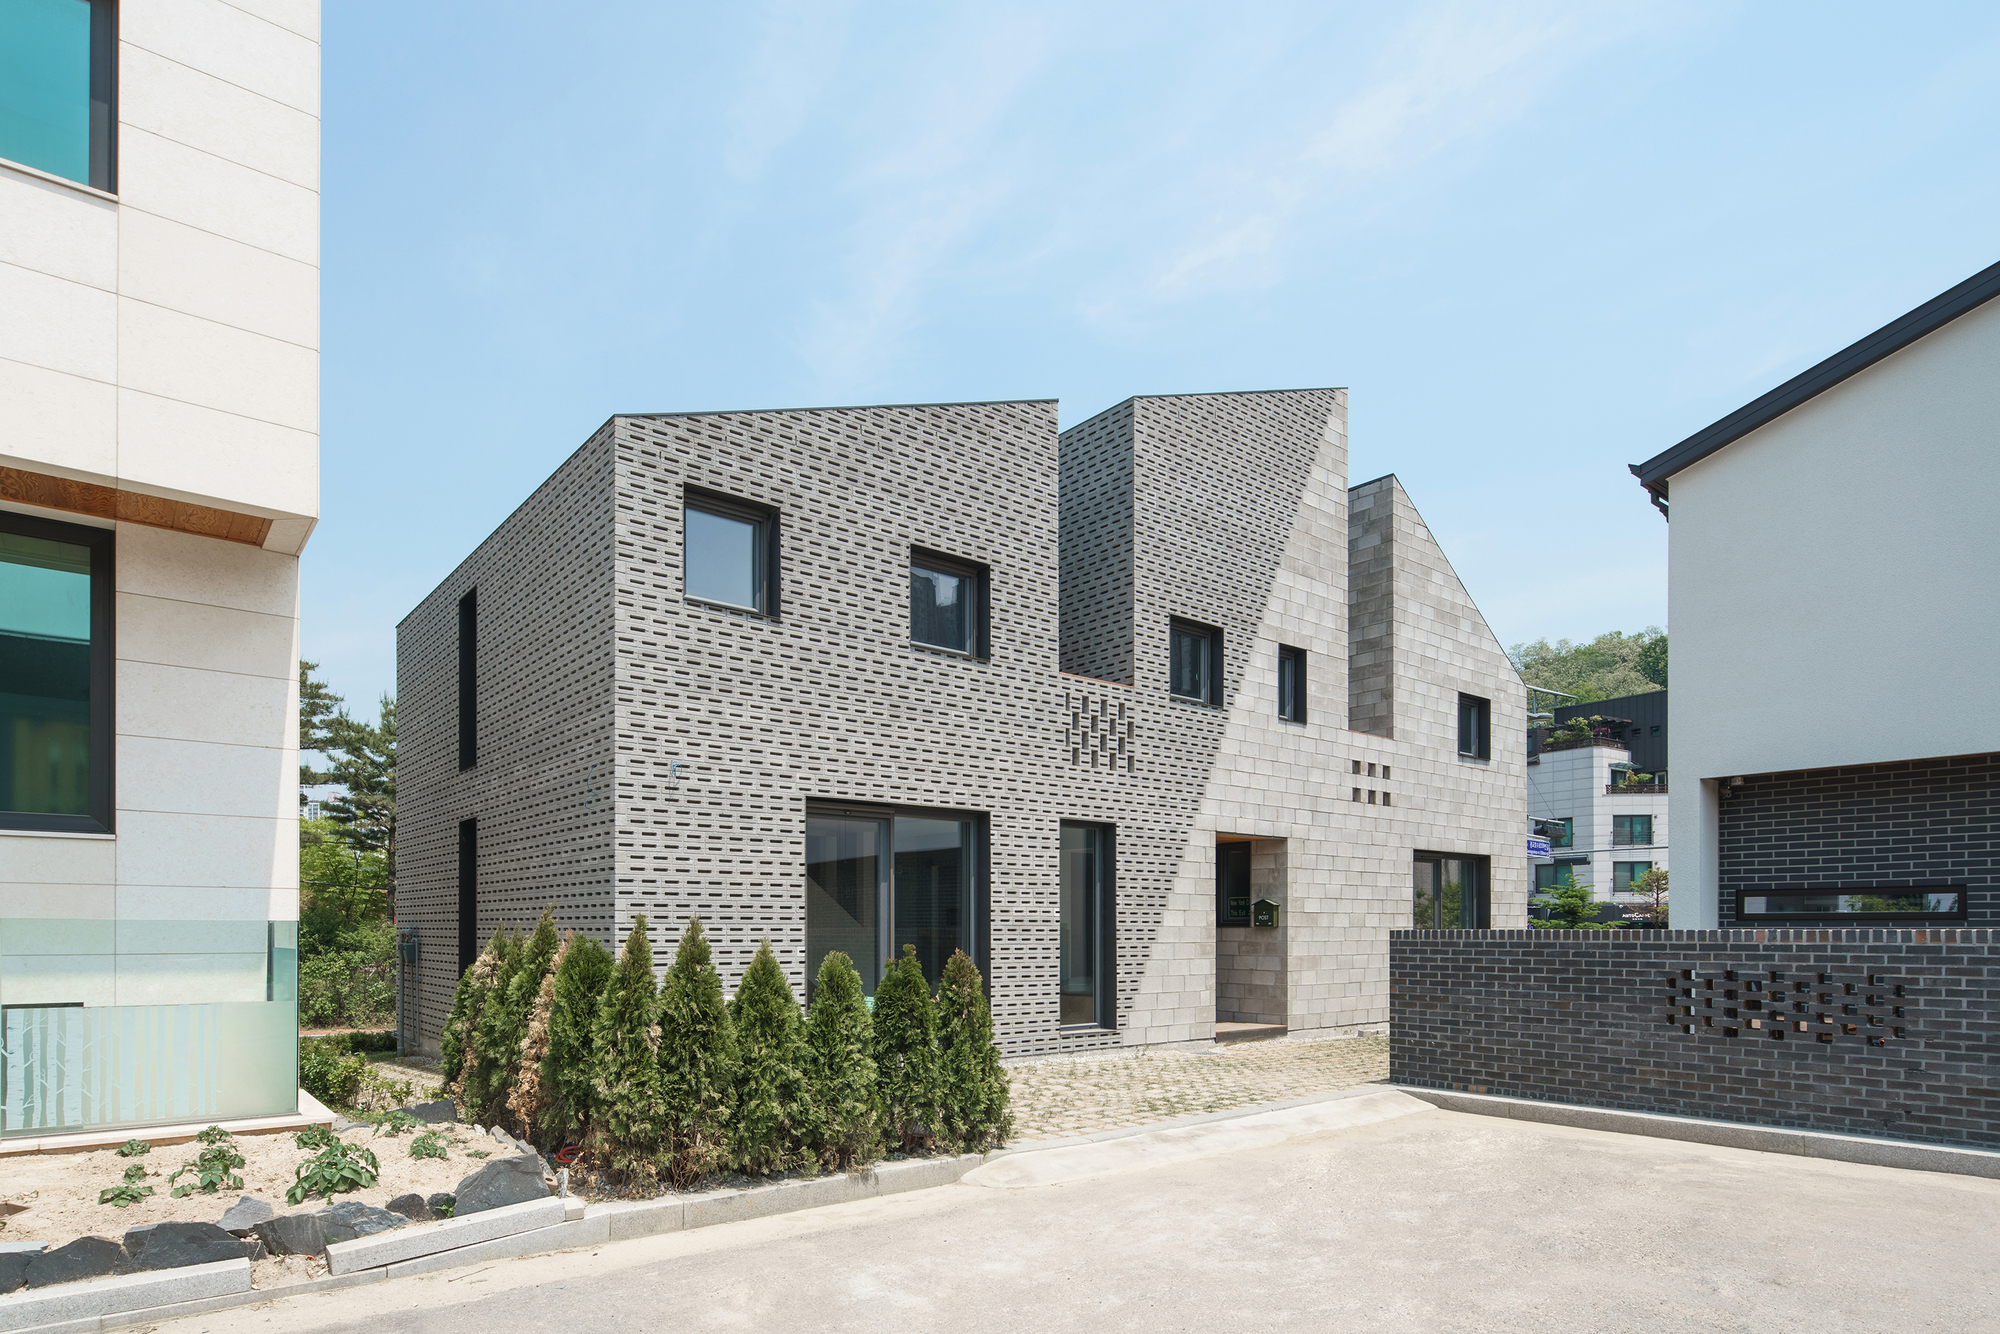 The Masonry House Stpmj Archdaily